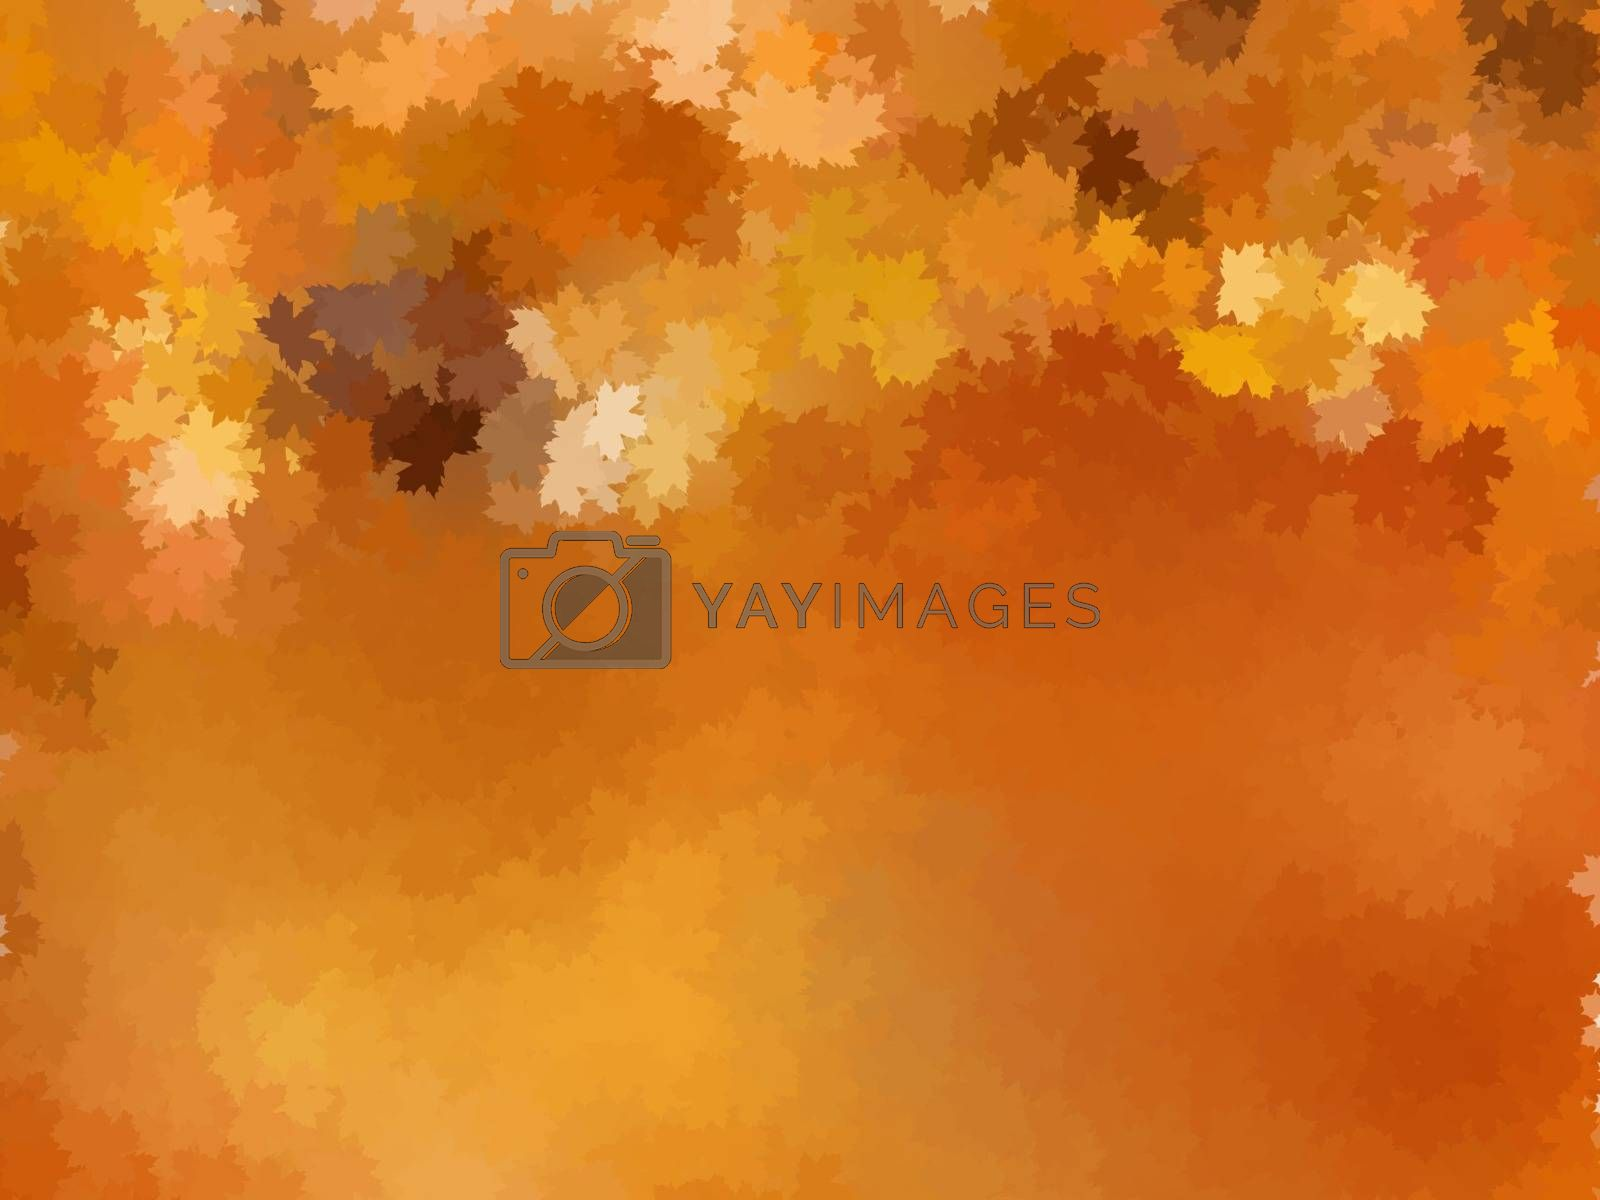 Vector illustration with a colorful autumn landscape.